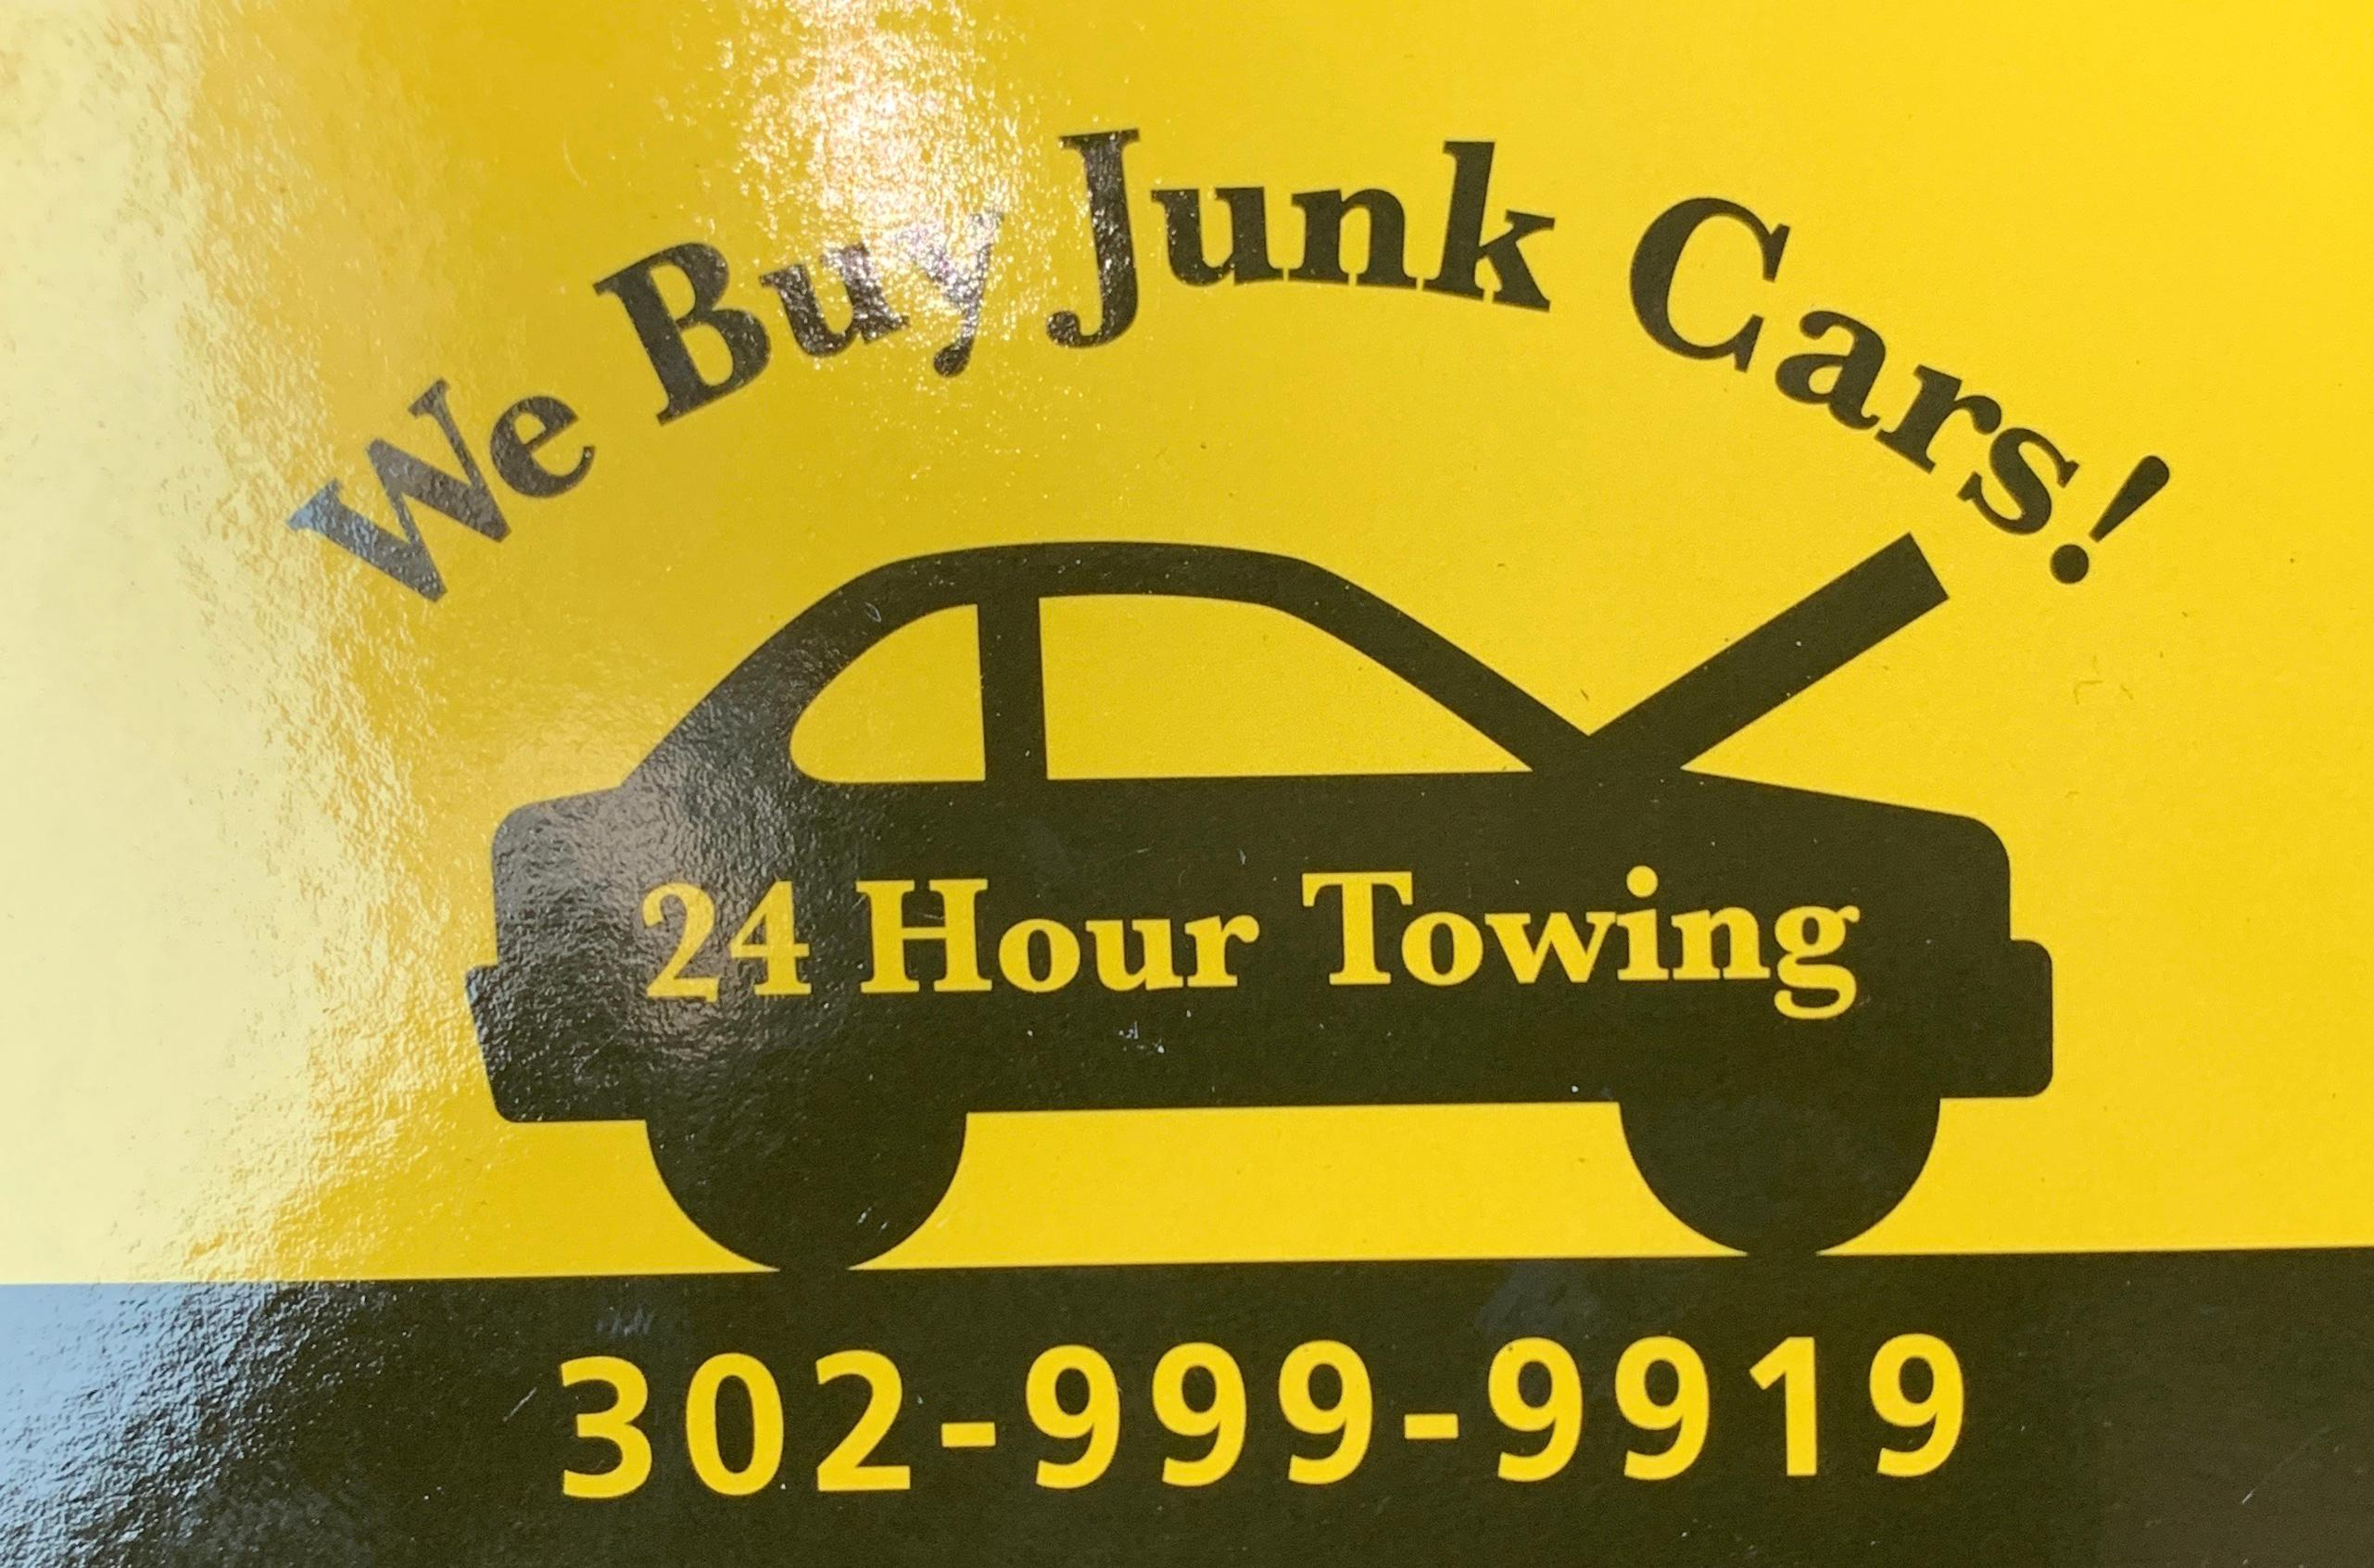 Baul's 24hr Towing & Services